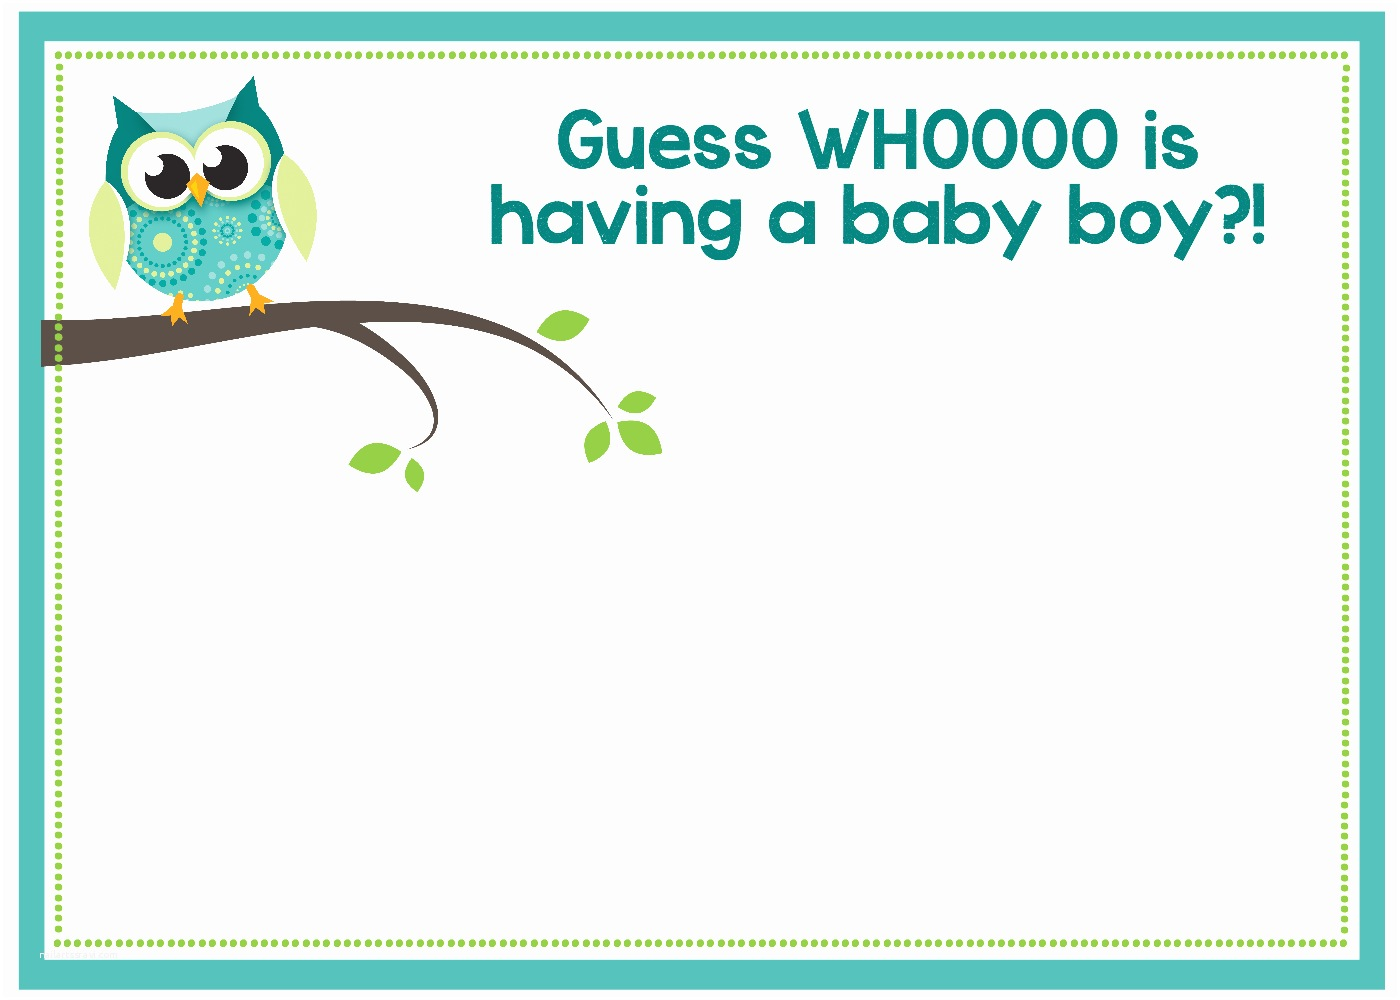 Owl themed Baby Shower Invitations Free Printable Owl Baby Shower Invitations & Other